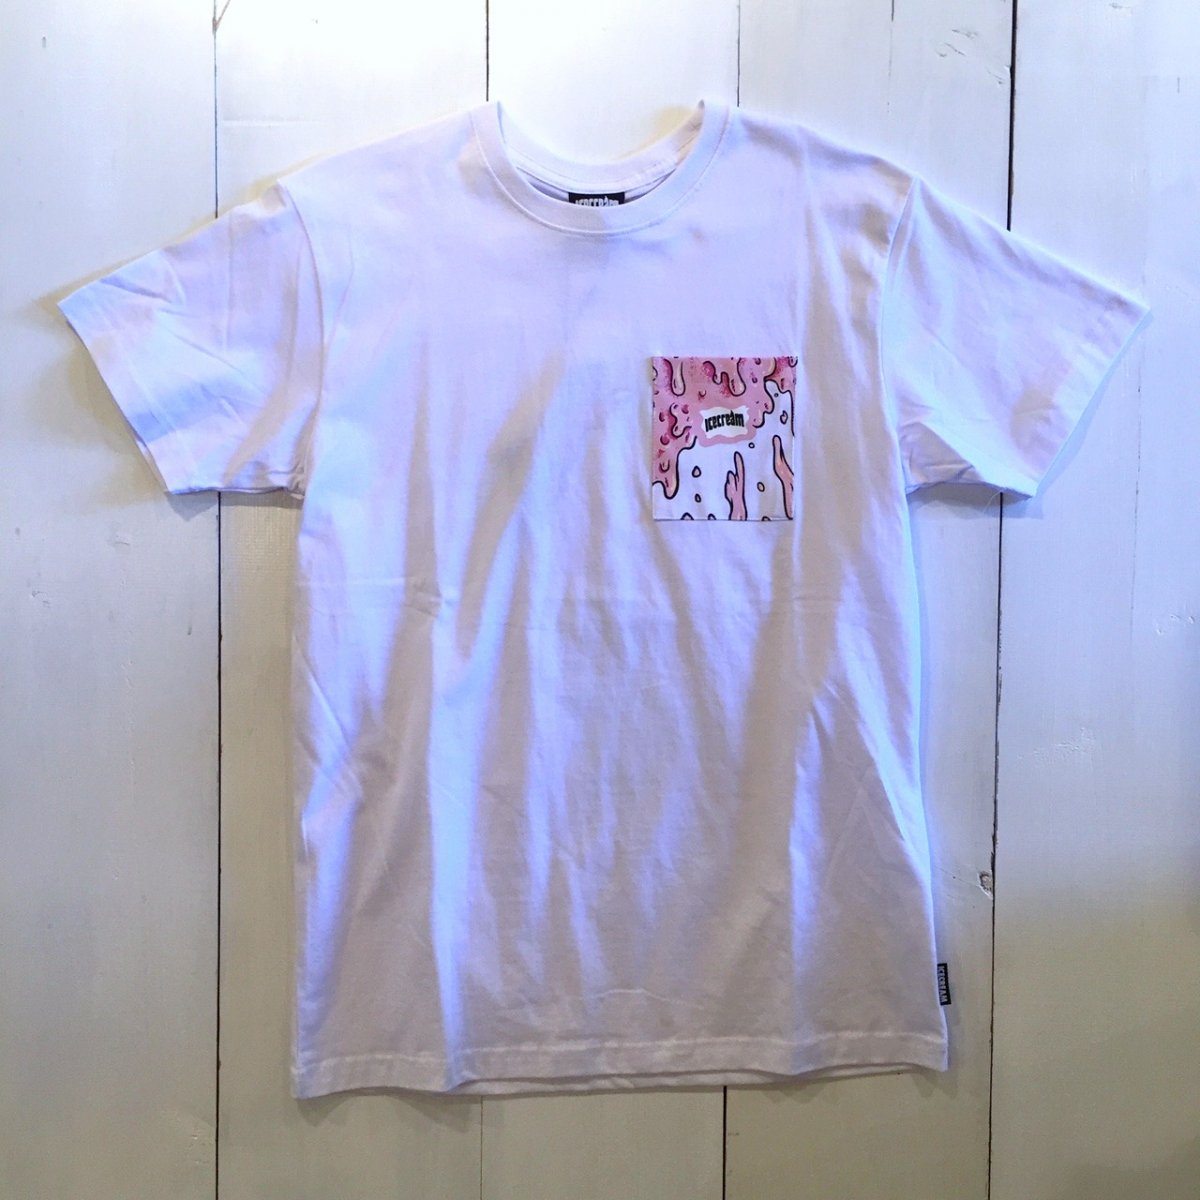 <img class='new_mark_img1' src='//img.shop-pro.jp/img/new/icons3.gif' style='border:none;display:inline;margin:0px;padding:0px;width:auto;' />ICE CREAM アイスクリーム / Tシャツ THOMAS POCKET T-SHIRTS 【WHITE】